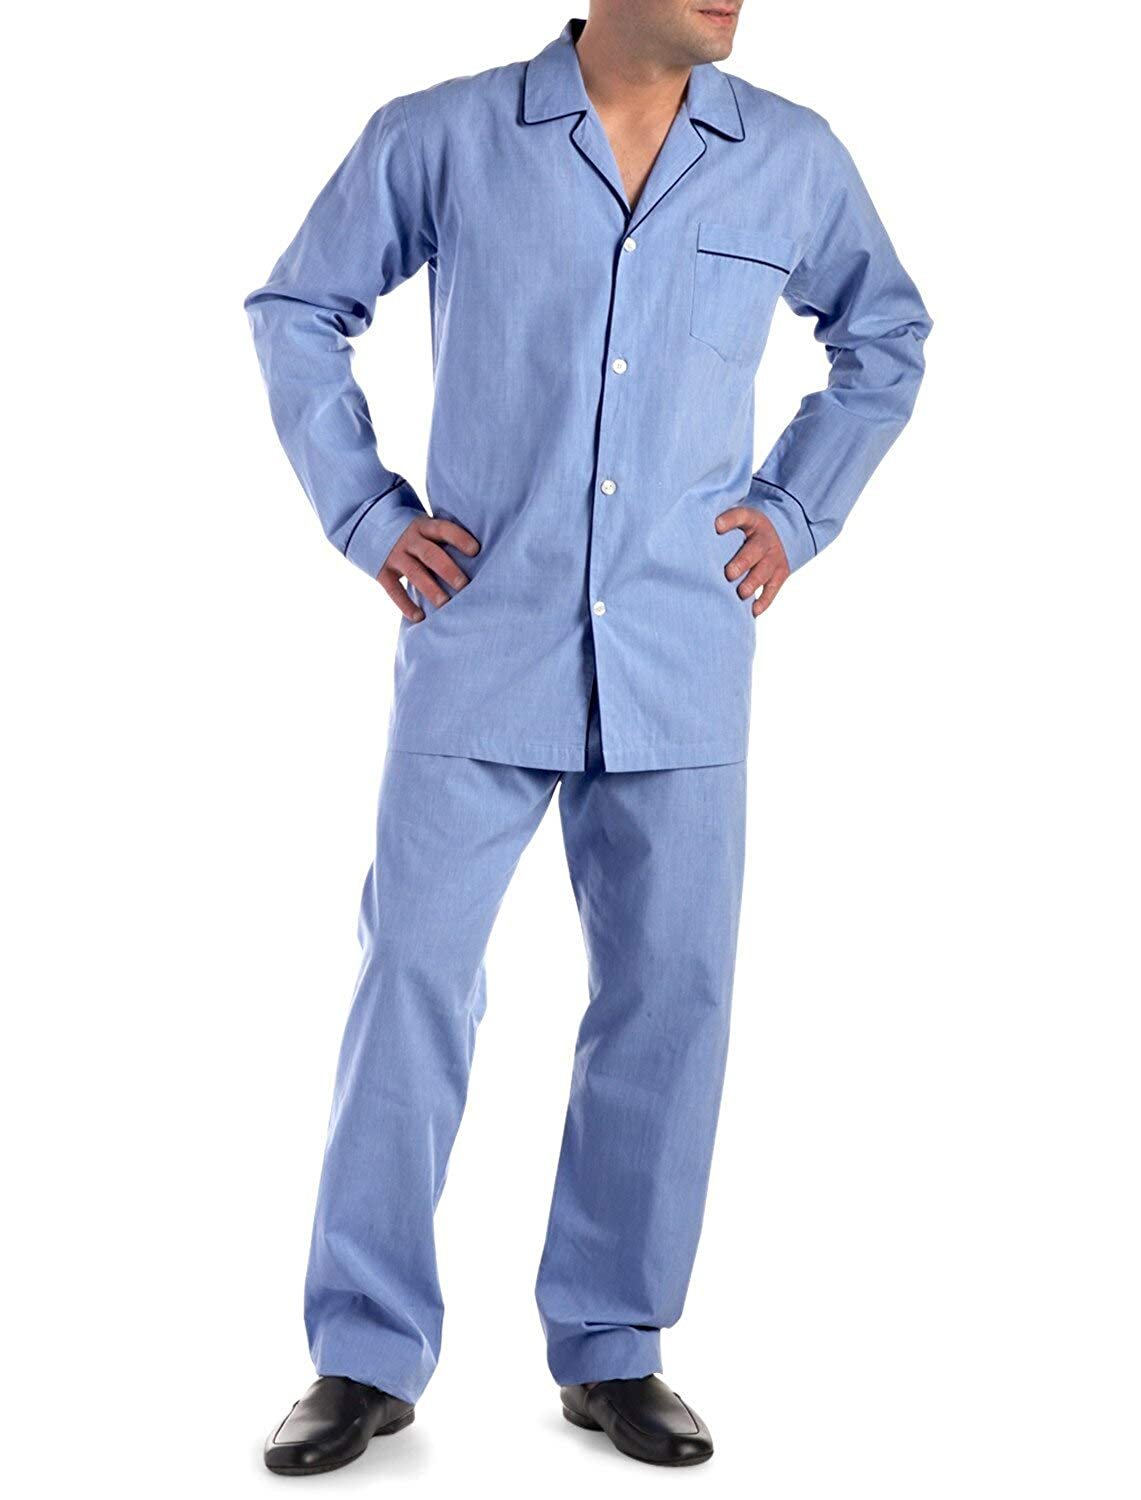 Rochester by DXL Big and Tall Cotton Pajamas